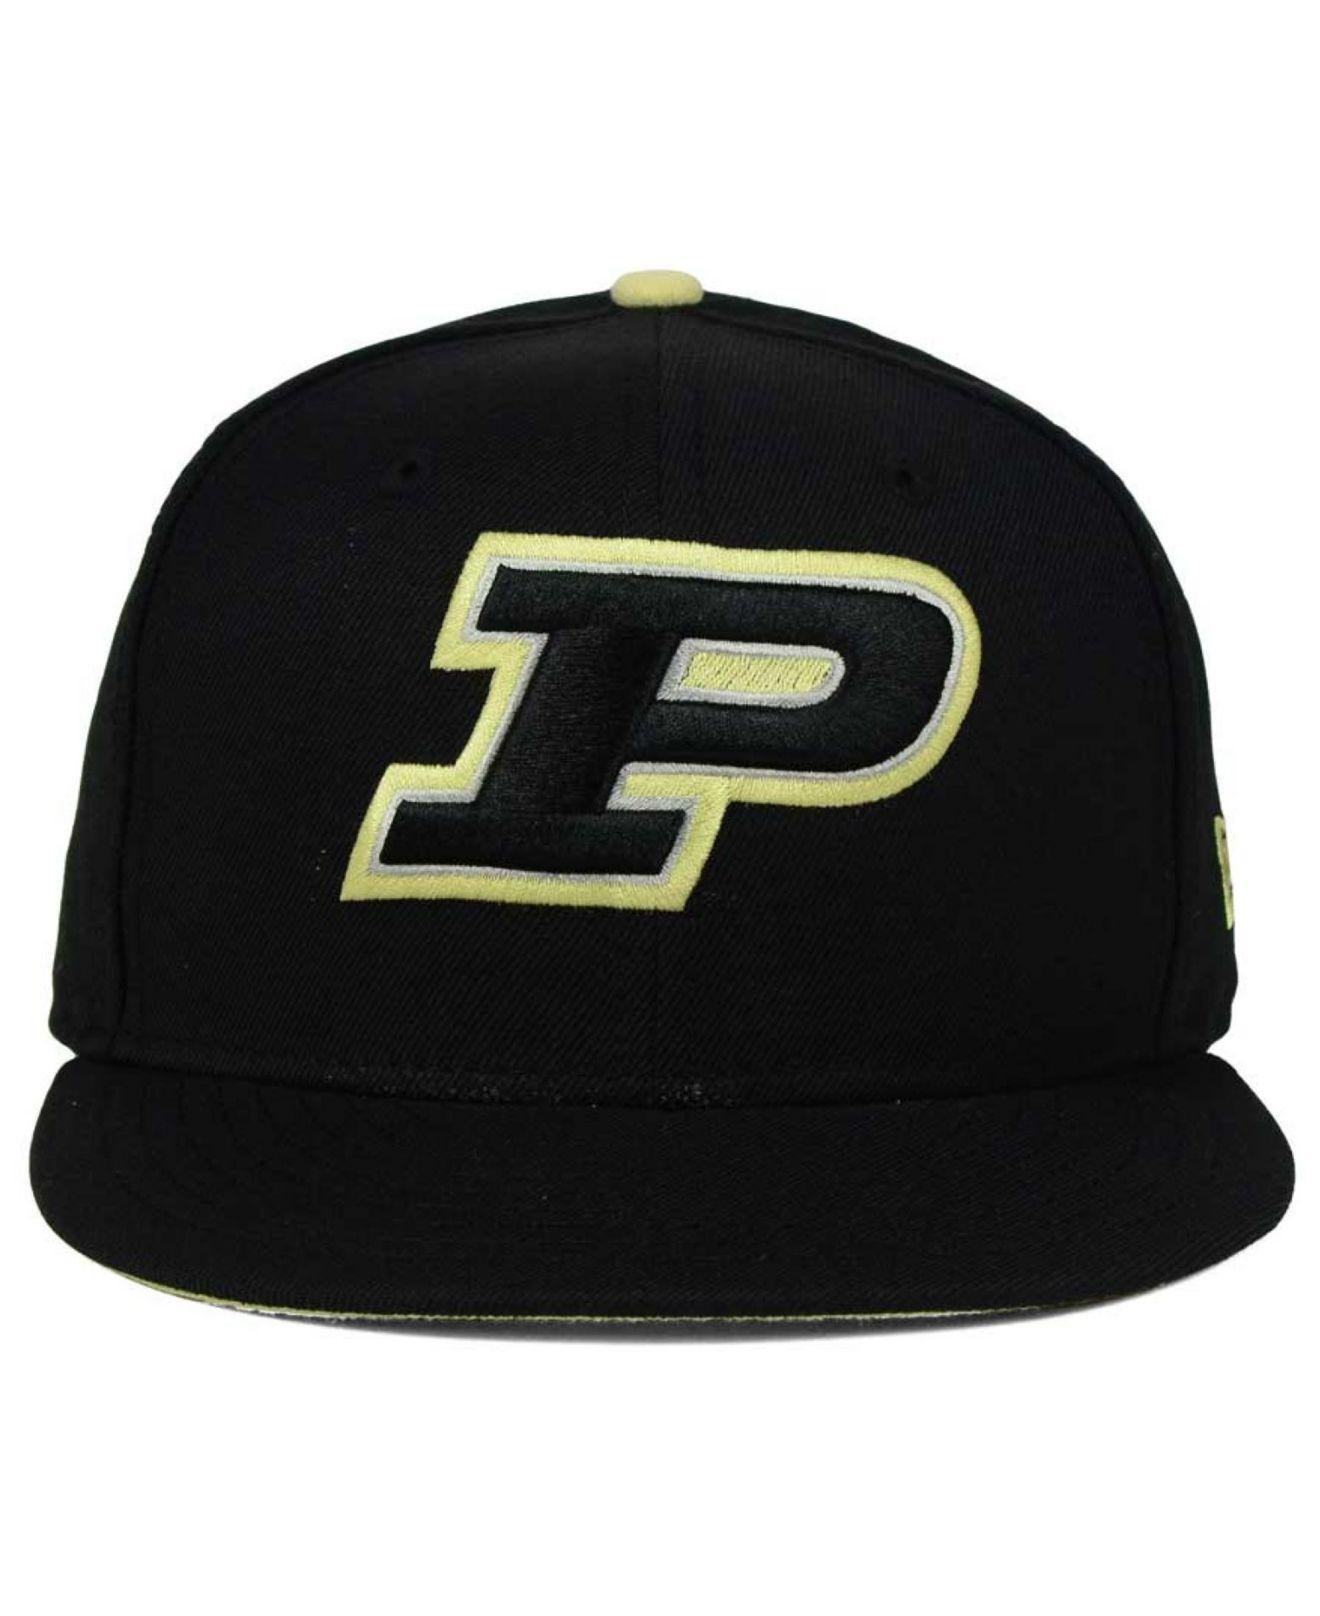 info for 74be6 80ecb Lyst - KTZ Purdue Boilermakers Core 9fifty Snapback Cap in Black for Men